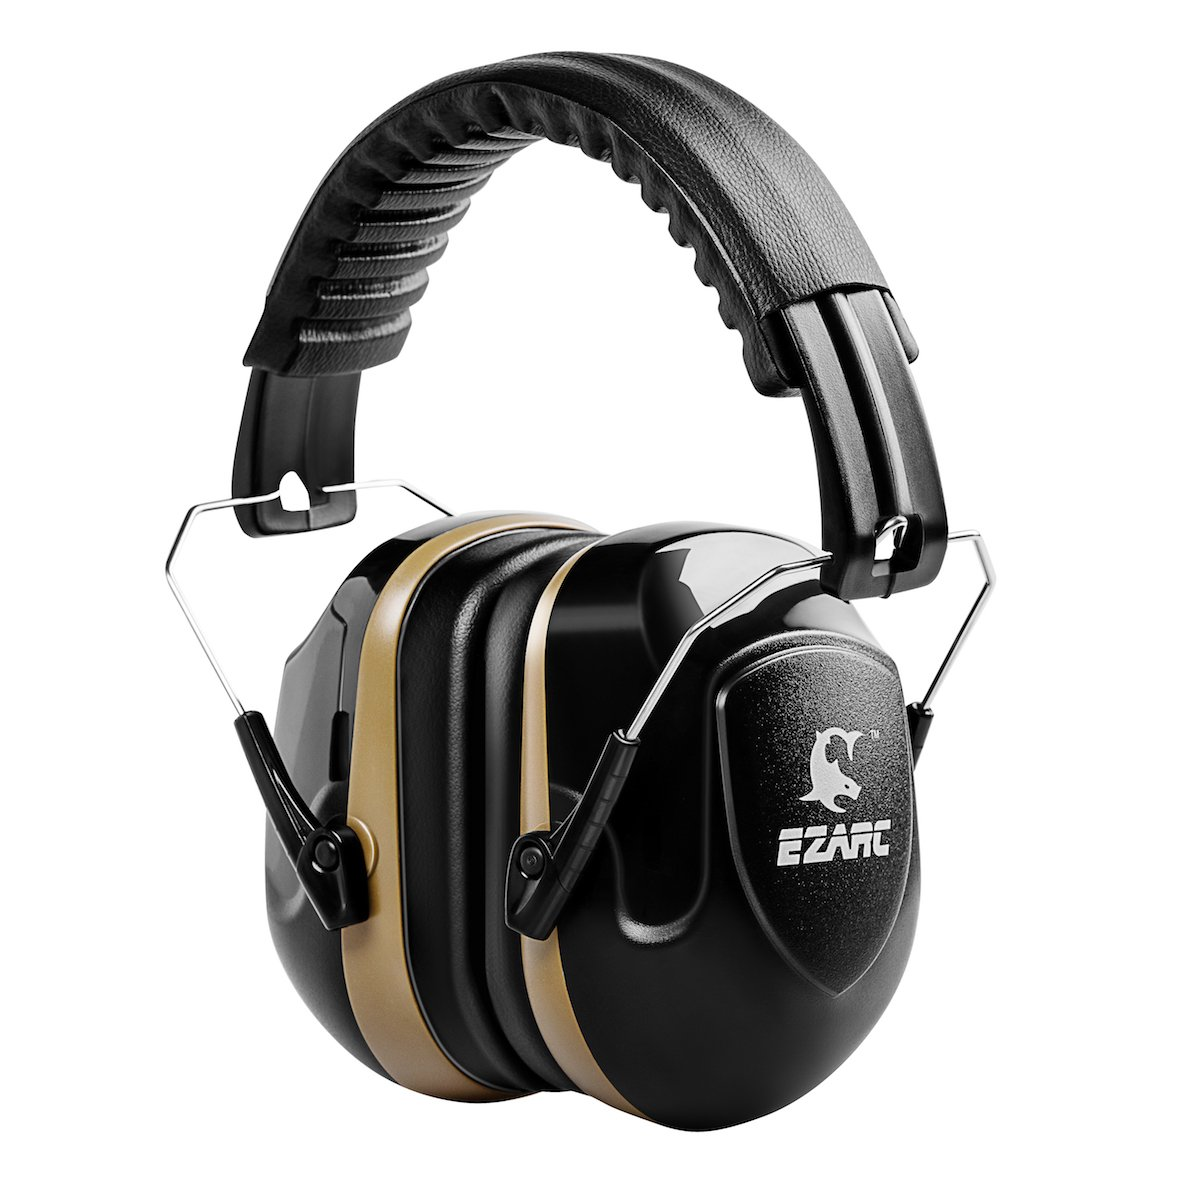 EZARC Safety Ear Muffs 34dB for Shooting Sports Events - Industrial Ear Protection Plant Working Hearing Protection Adjustable Headband Ear Defenders - Noise Reduction Earmuffs, Black Brown